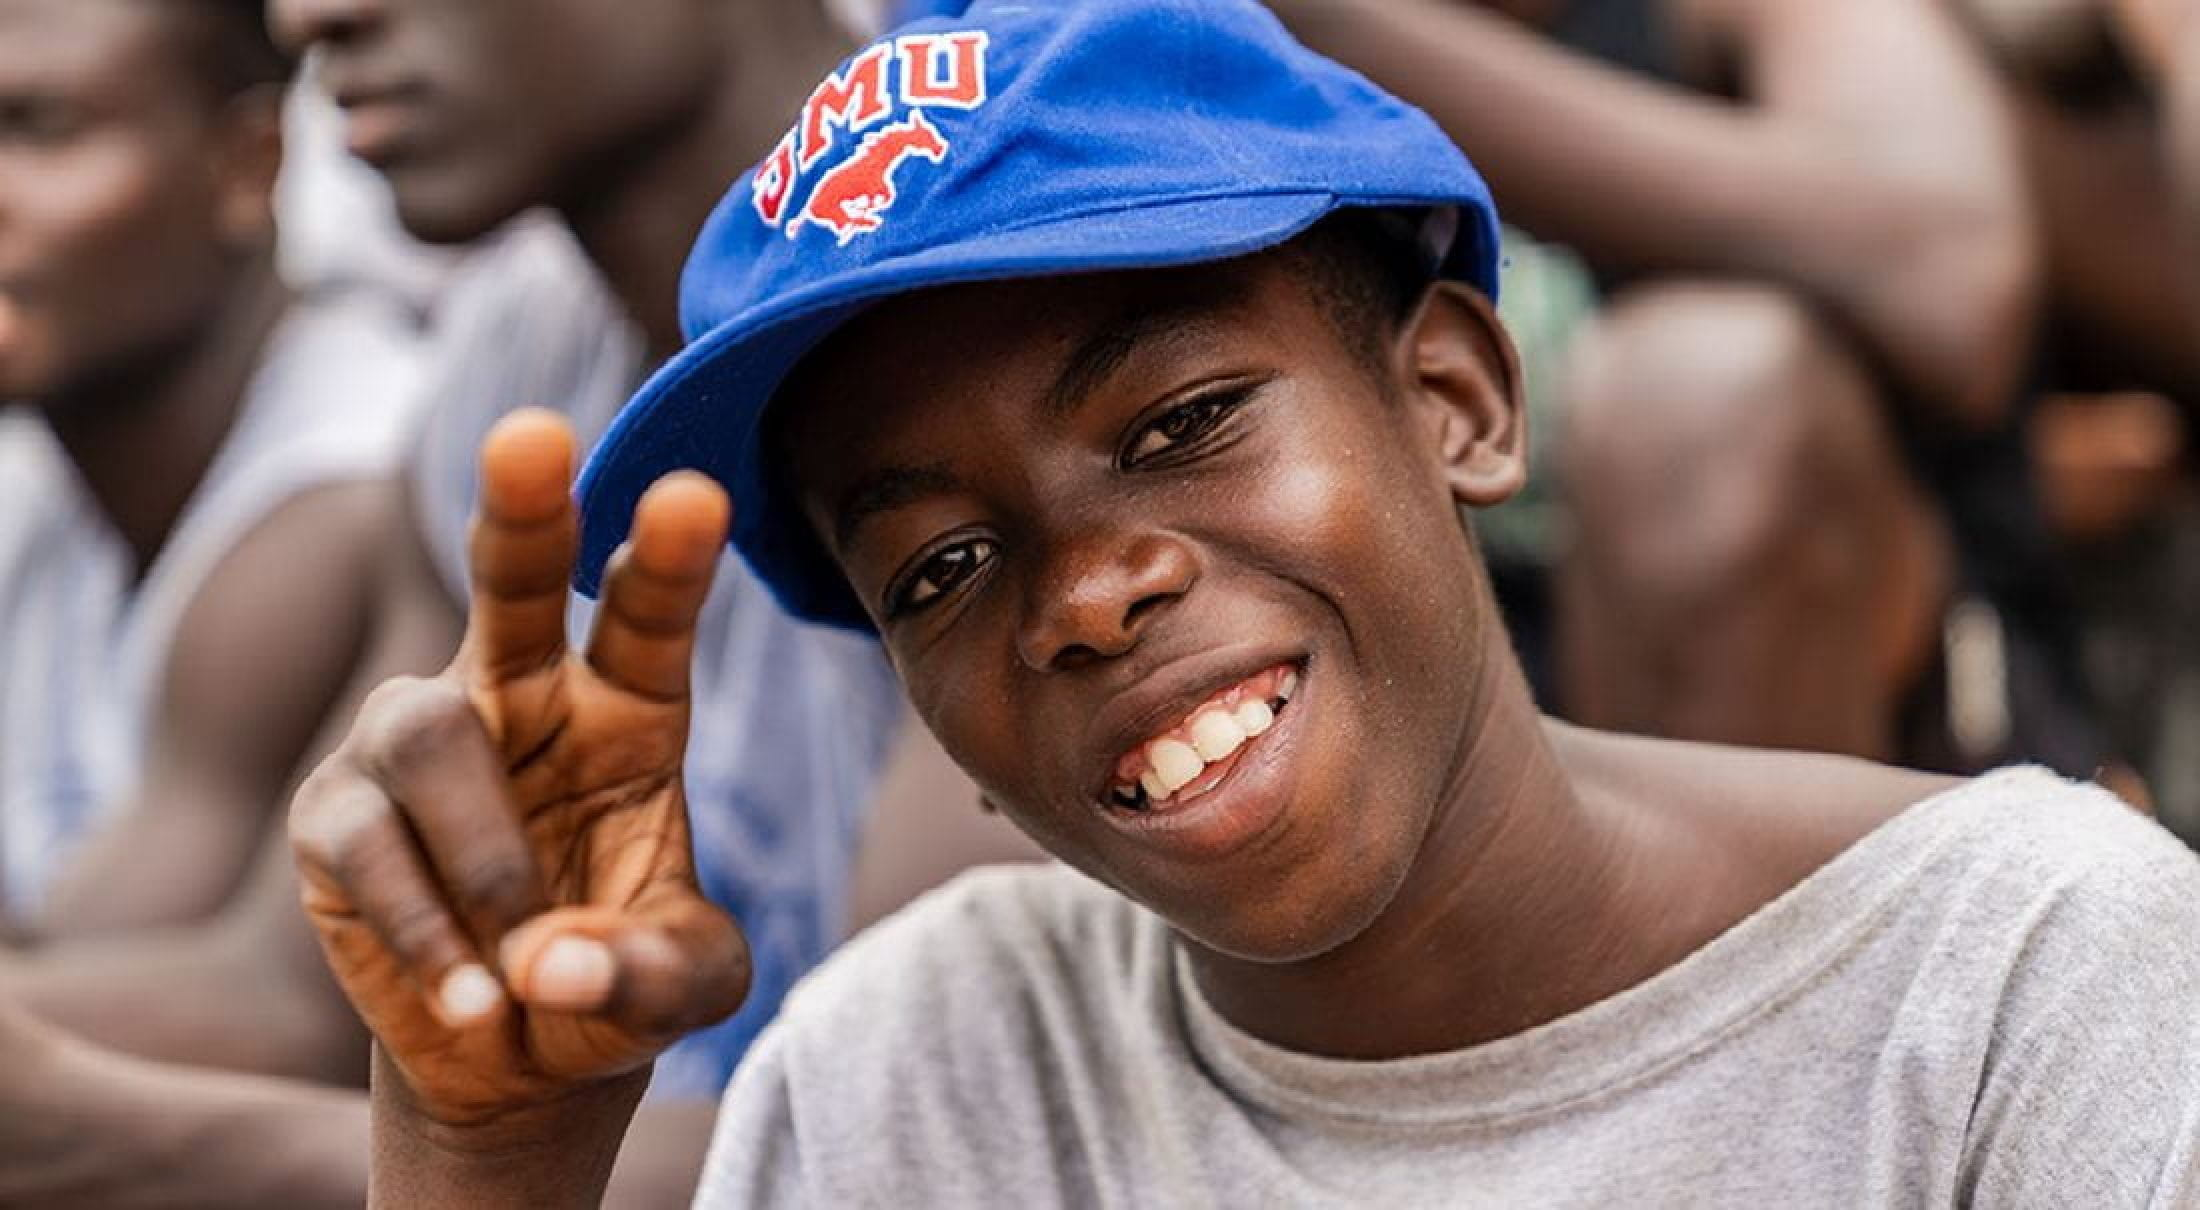 SMU football staff conducted a youth camp in Lagos, Nigeria.